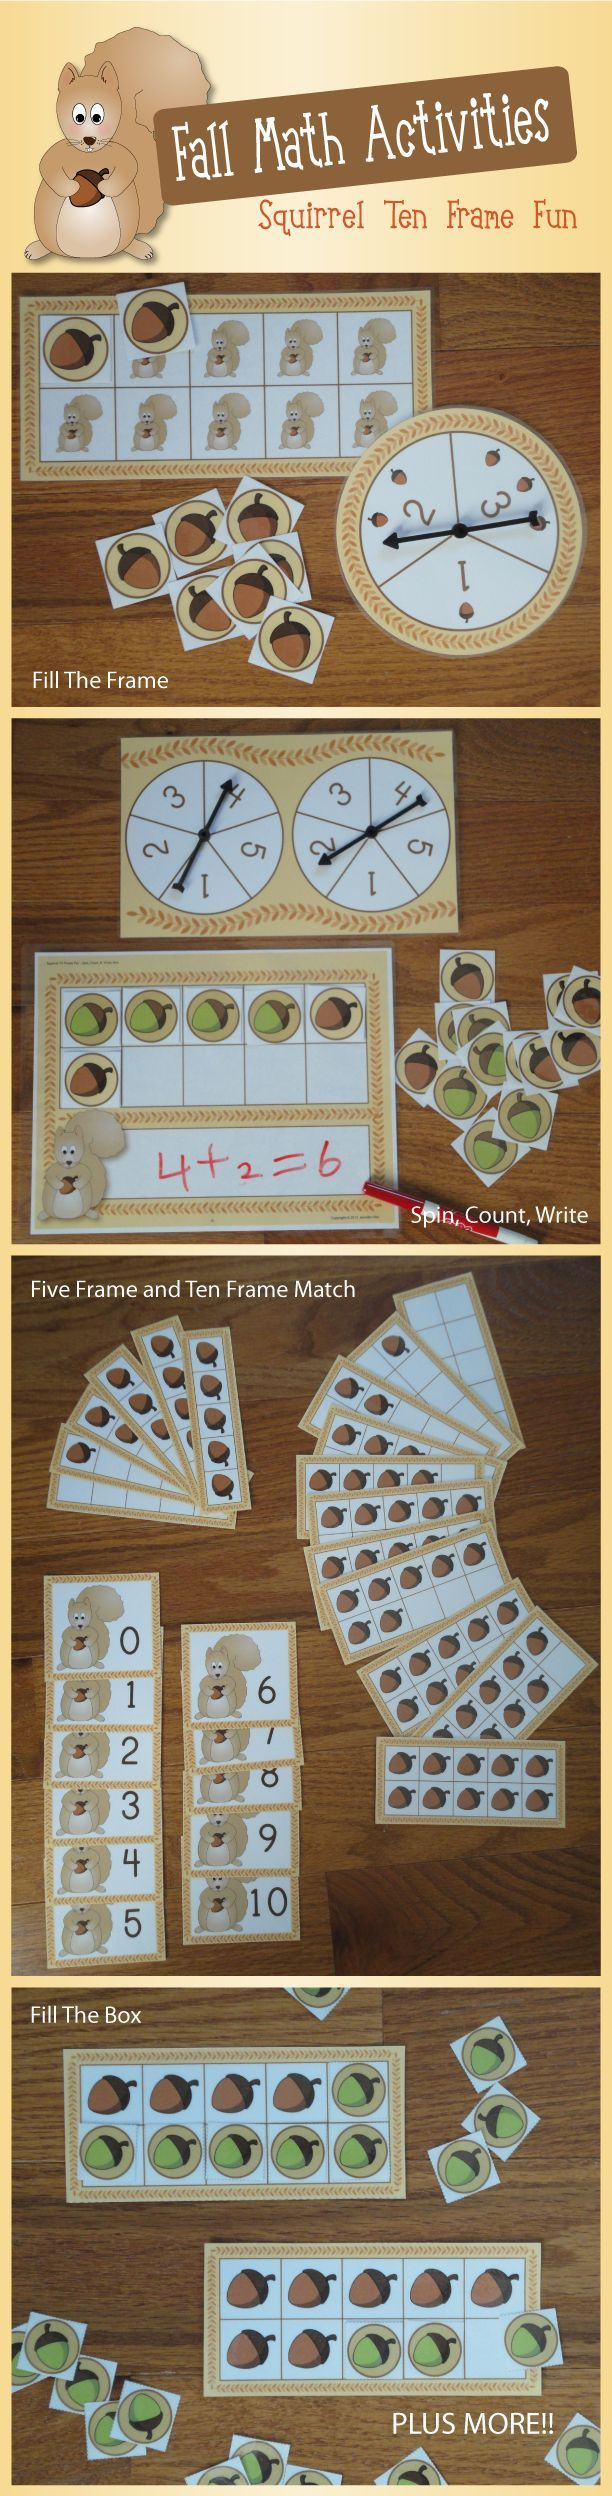 Squirrel ten frame math activities.vit use math skills so it can help them add and tell time and learn their numbers.